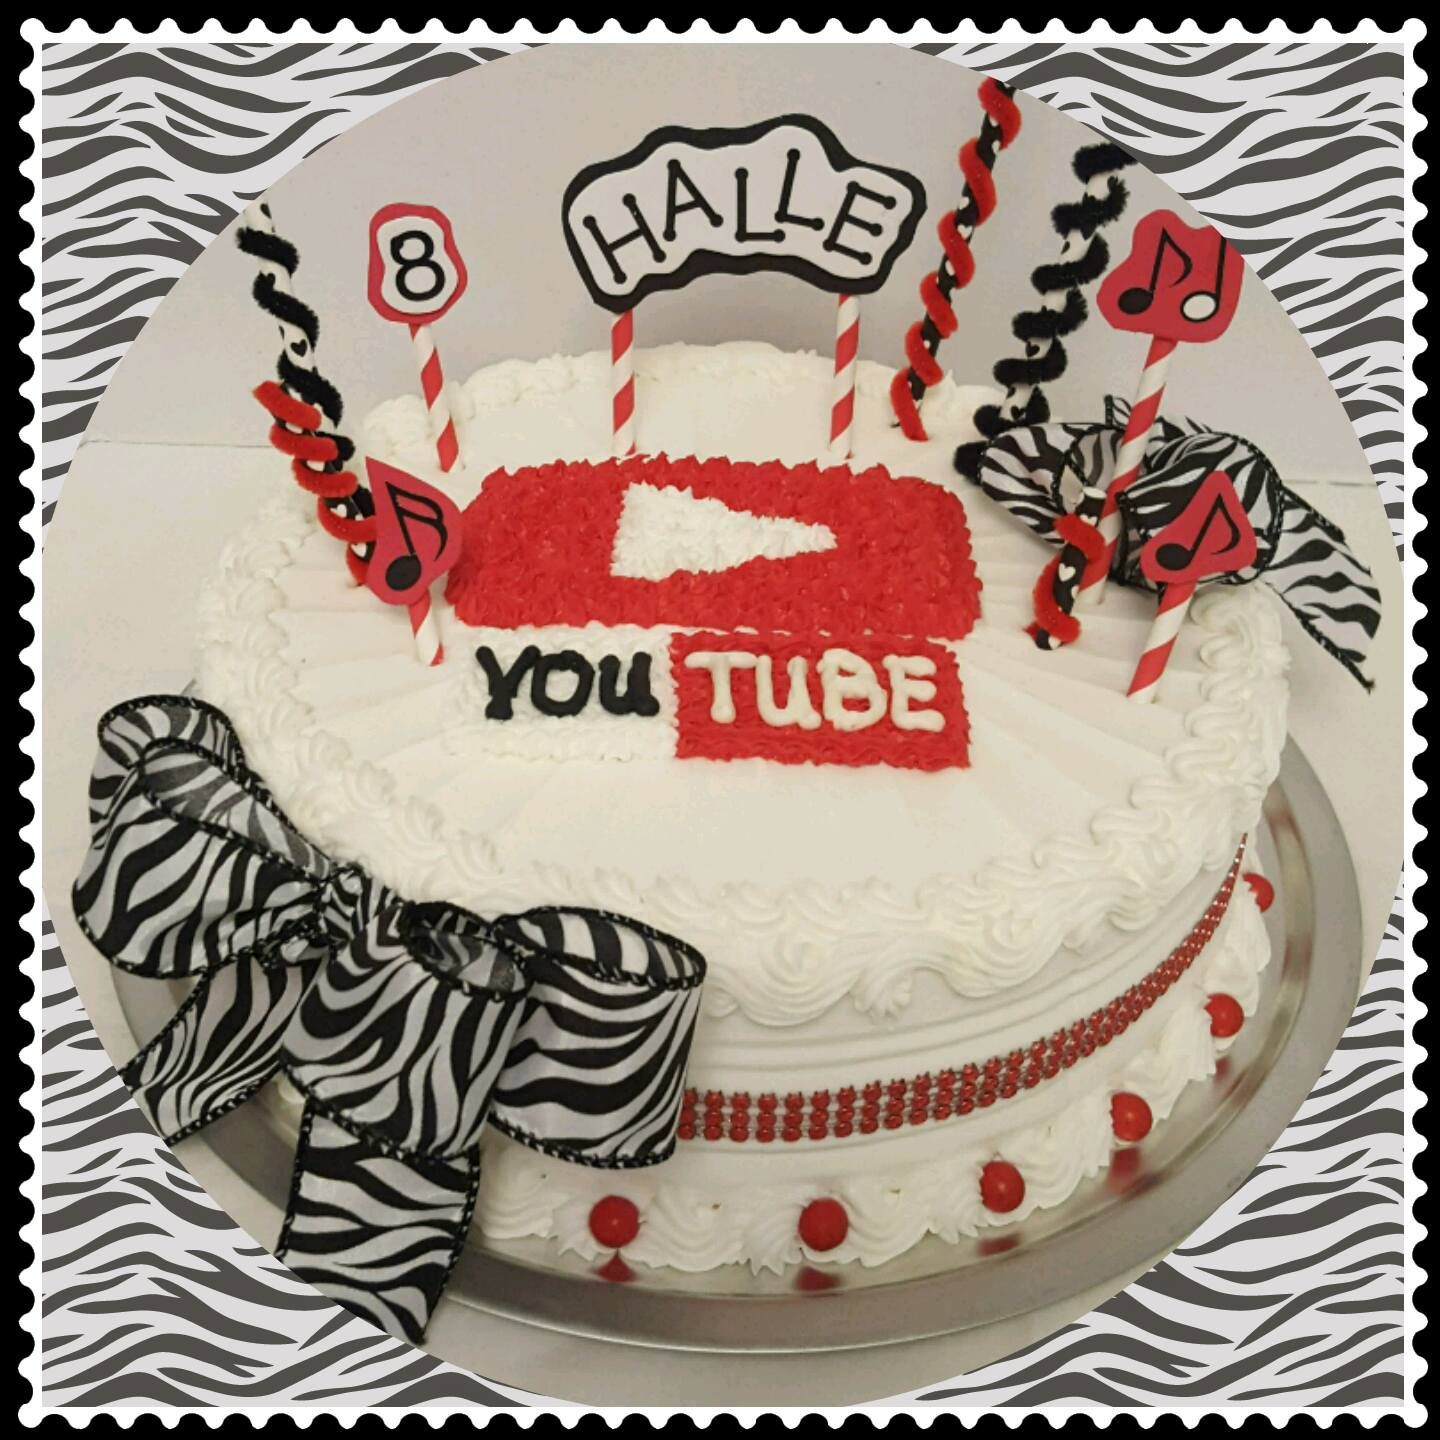 Brilliant Halles Youtube Birthday Cake Cheryl Stacy Cakes Did An Amazing Personalised Birthday Cards Paralily Jamesorg